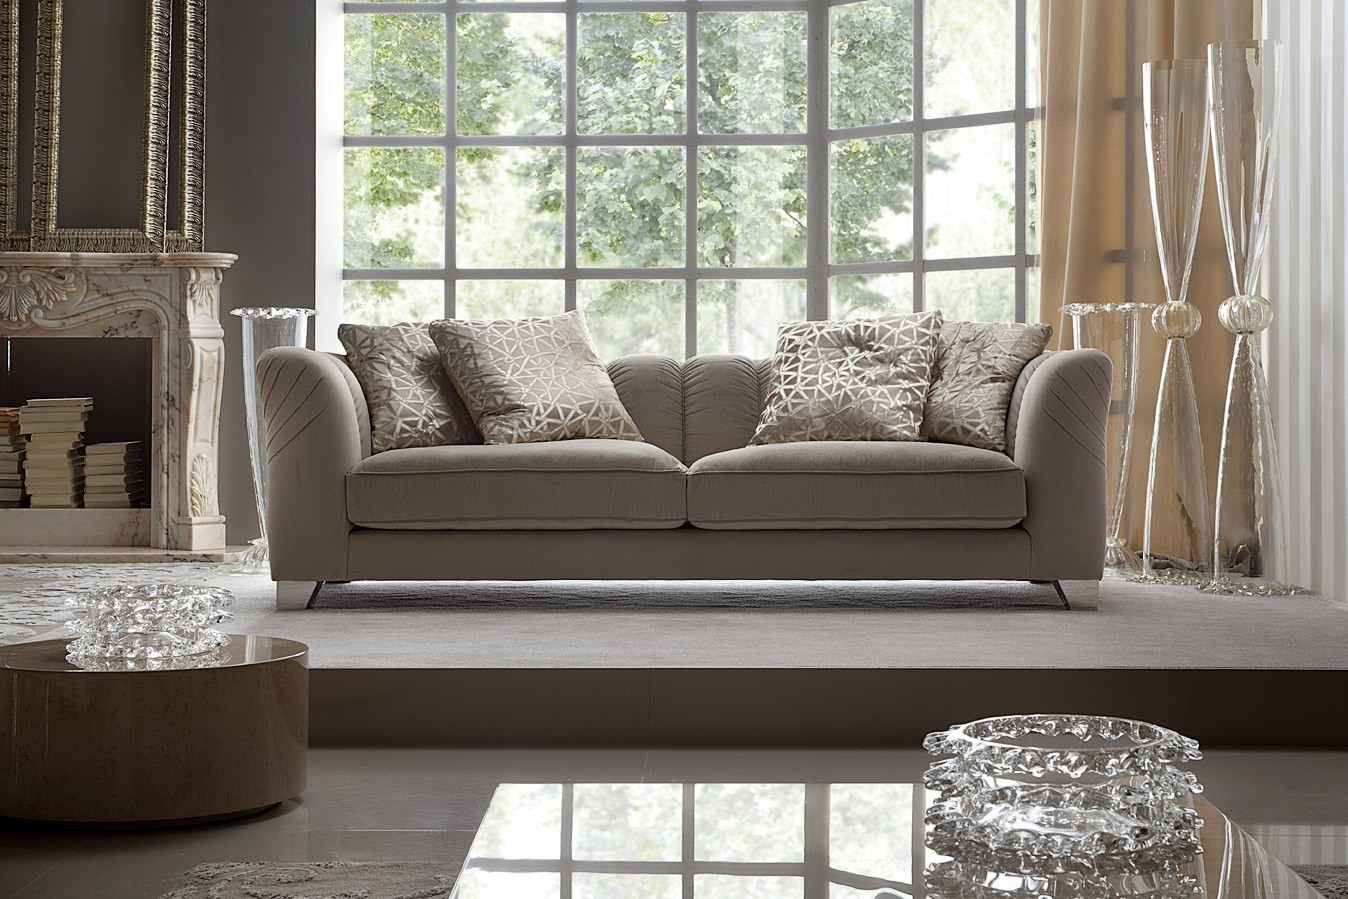 Here Are Some New Sofas Designs , I Hope It Will Help You To Get Some